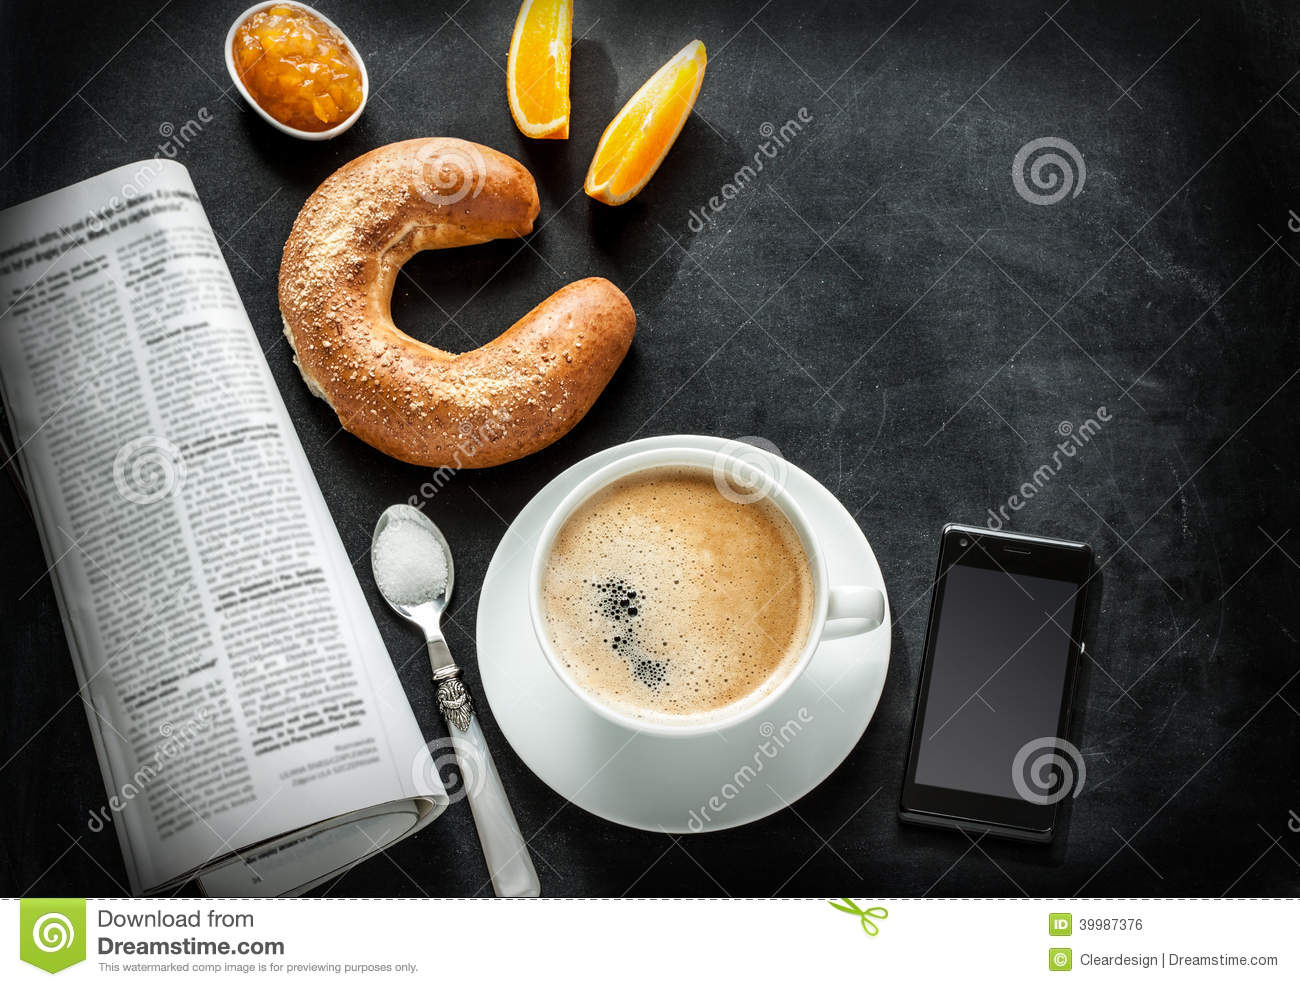 Continental breakfast and mobile phone on black chalkboard